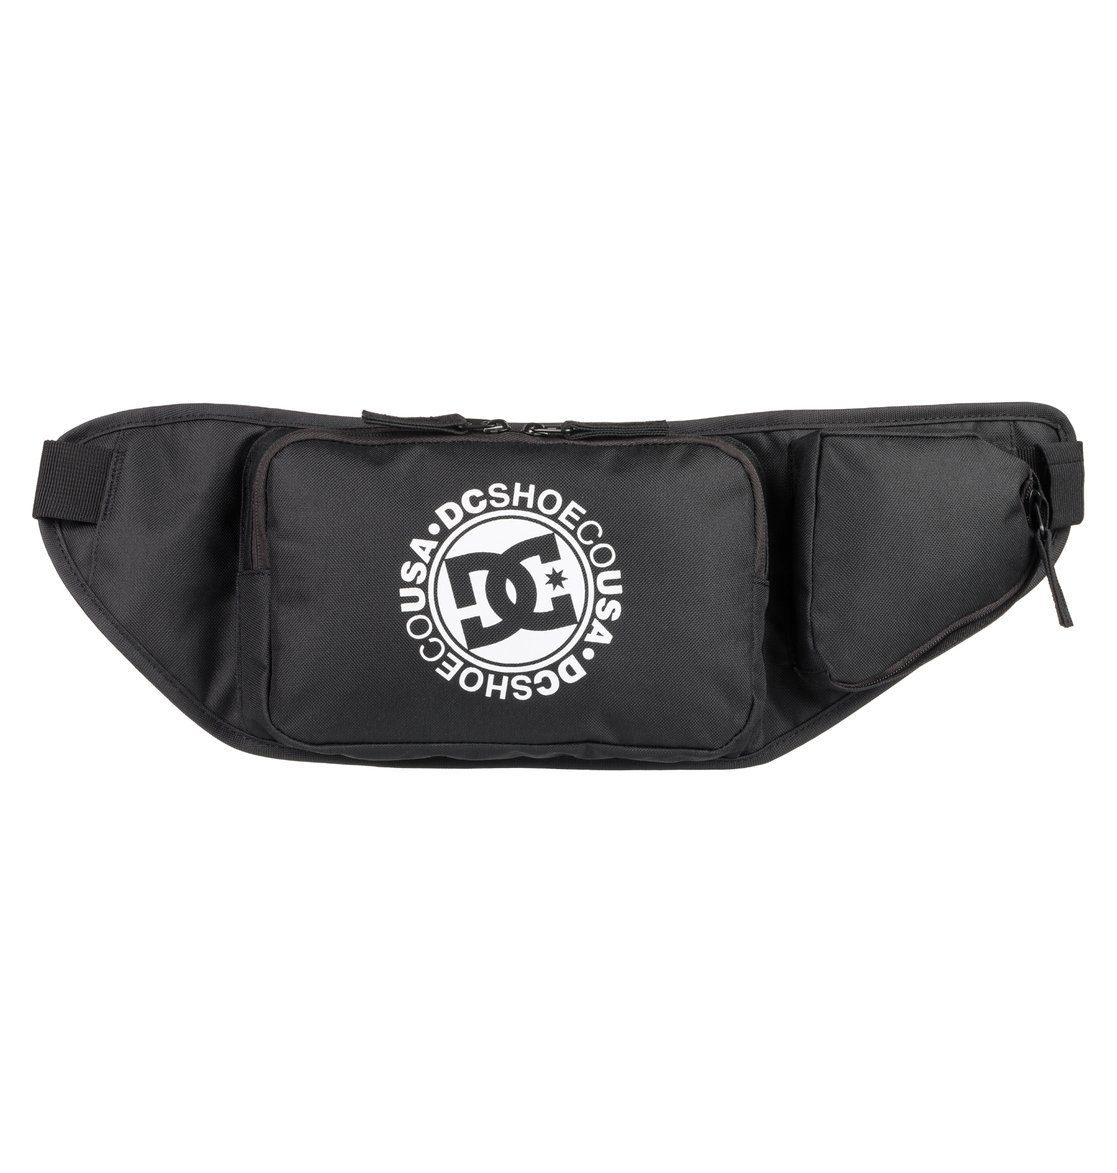 DC Shoes Gürteltasche »Skate«